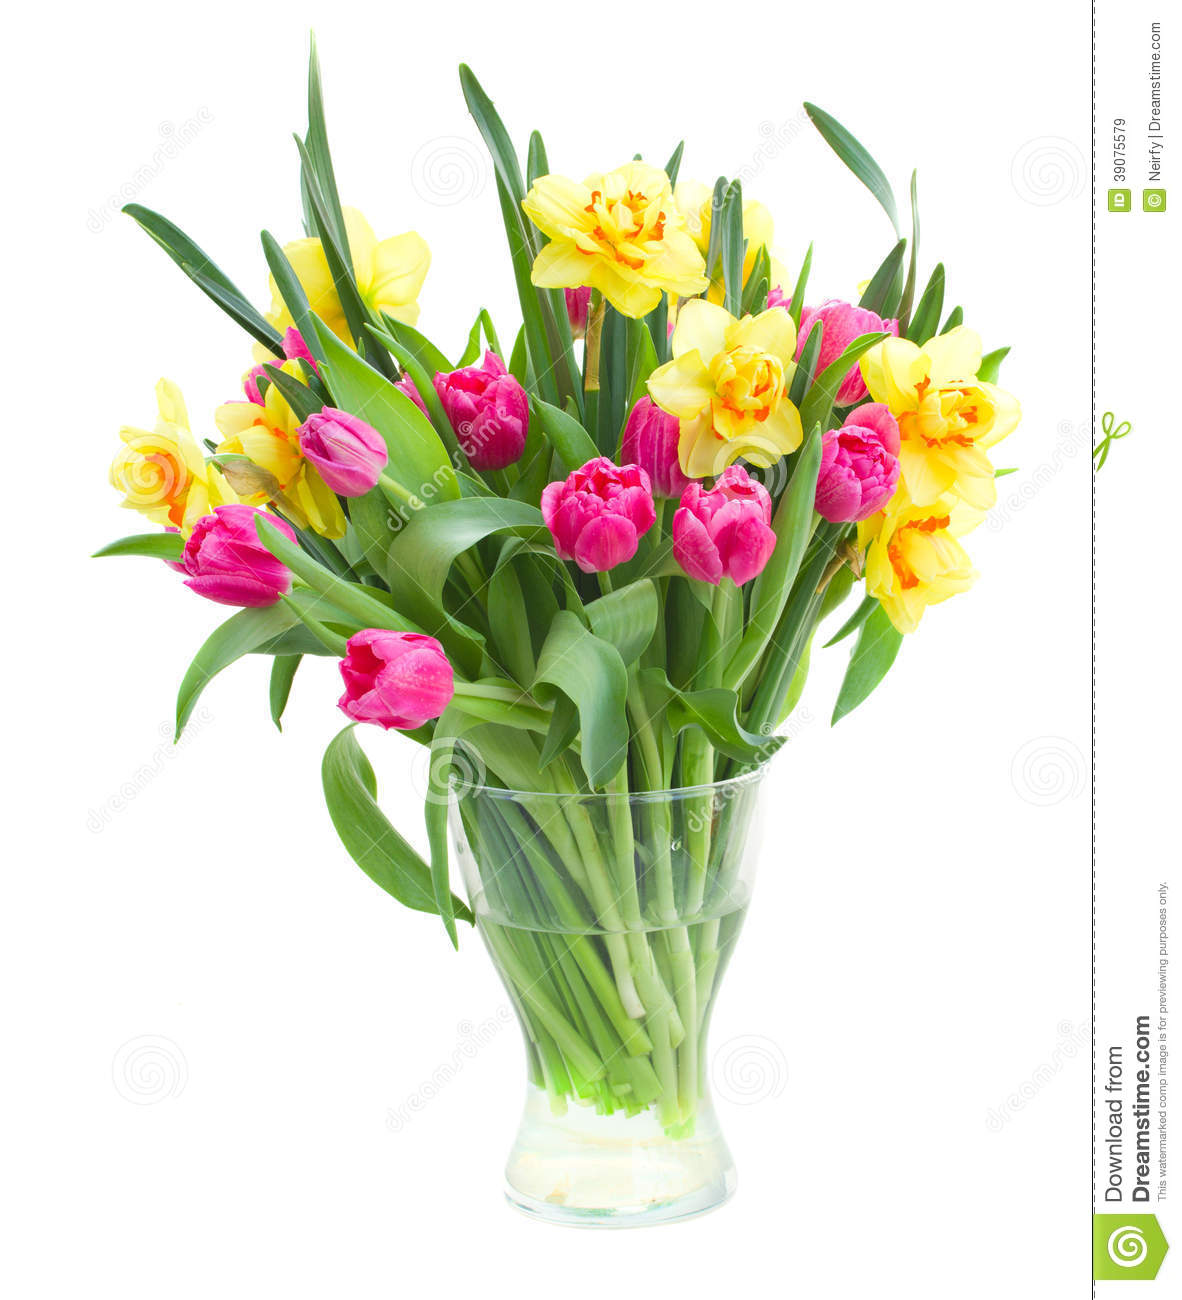 Bouquet des tulipes et des jonquilles dans le vase photo for Bouquet de tulipes